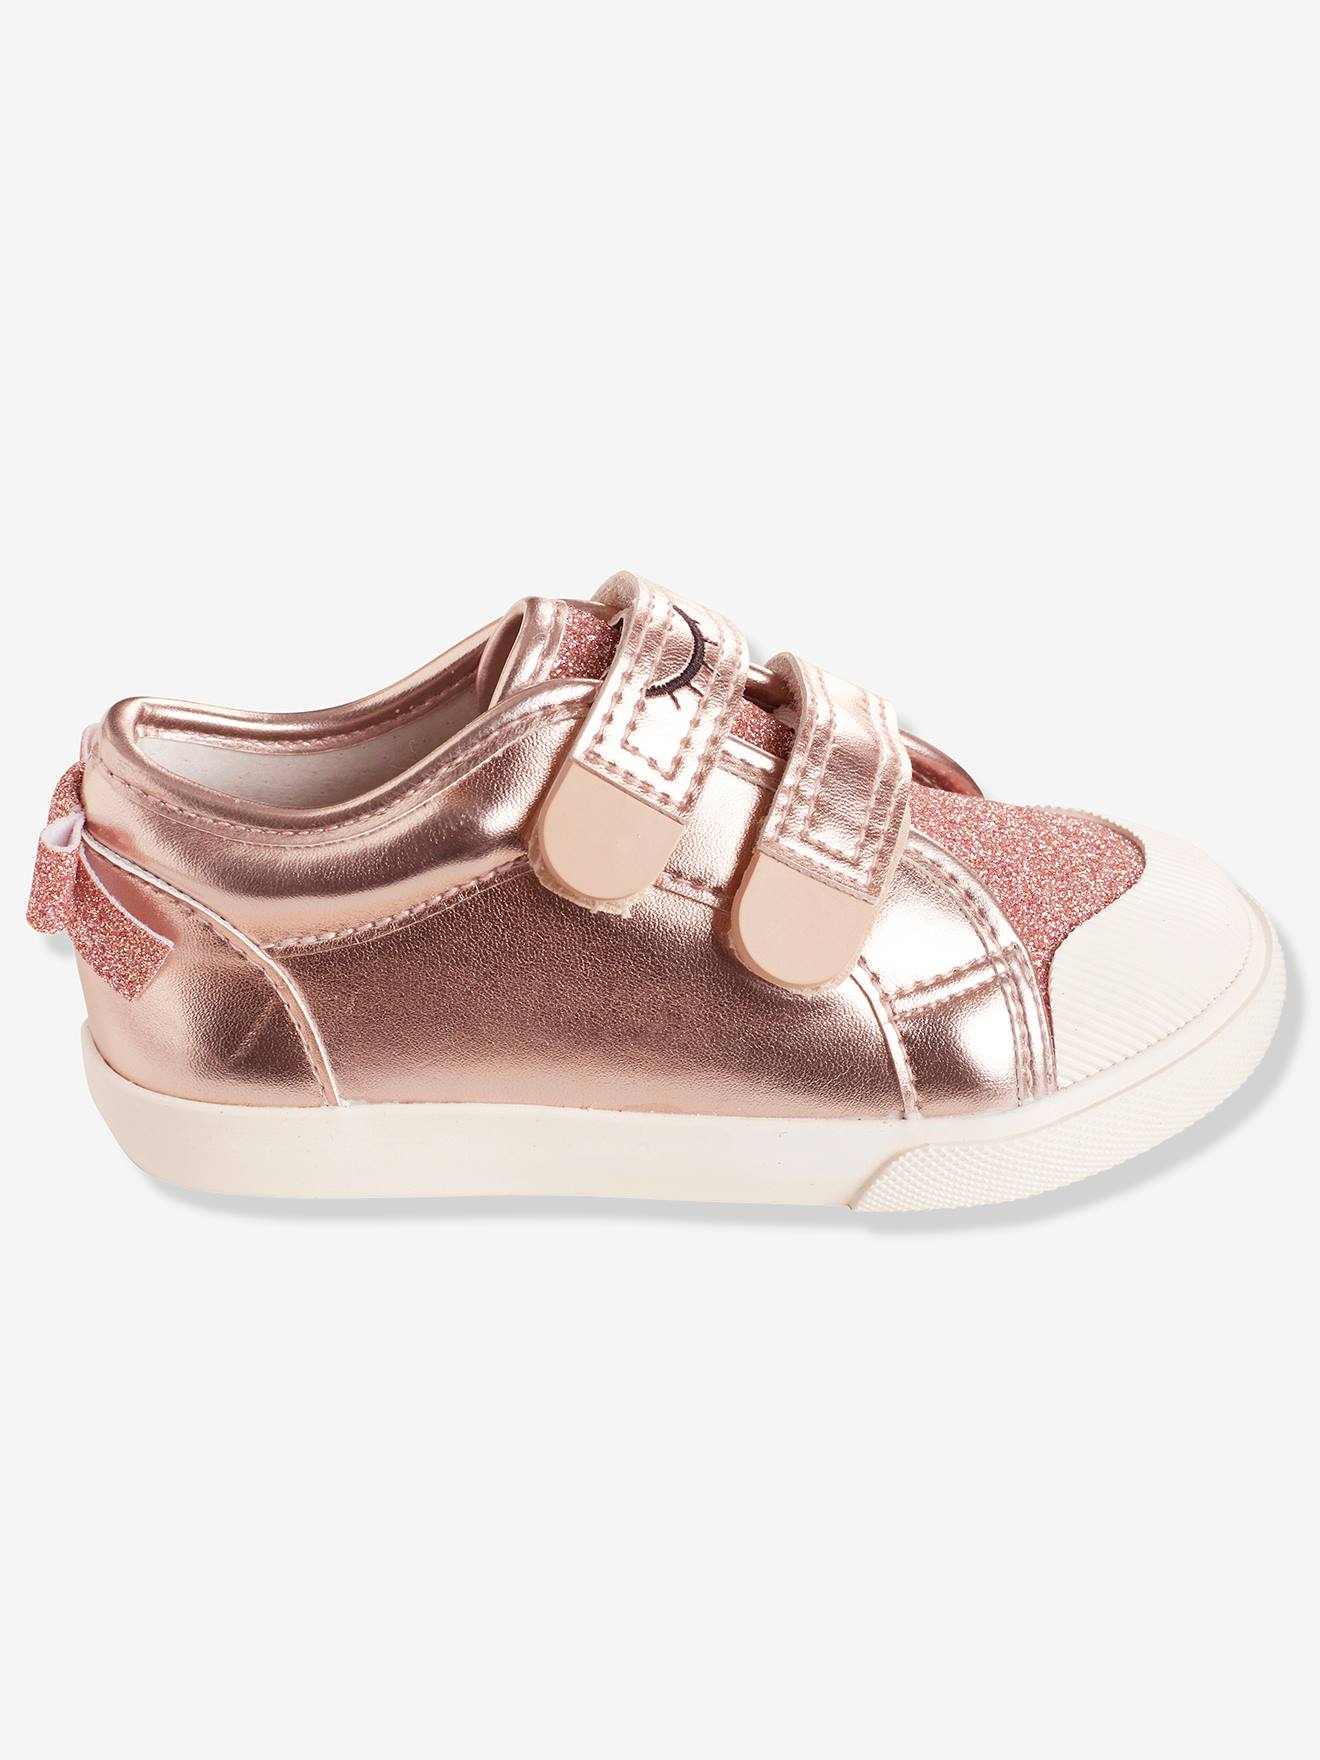 watch af2cc fb771 Chaussures Chaussures fille 23 38 Baskets,tennis Baskets scratchées fille  collection